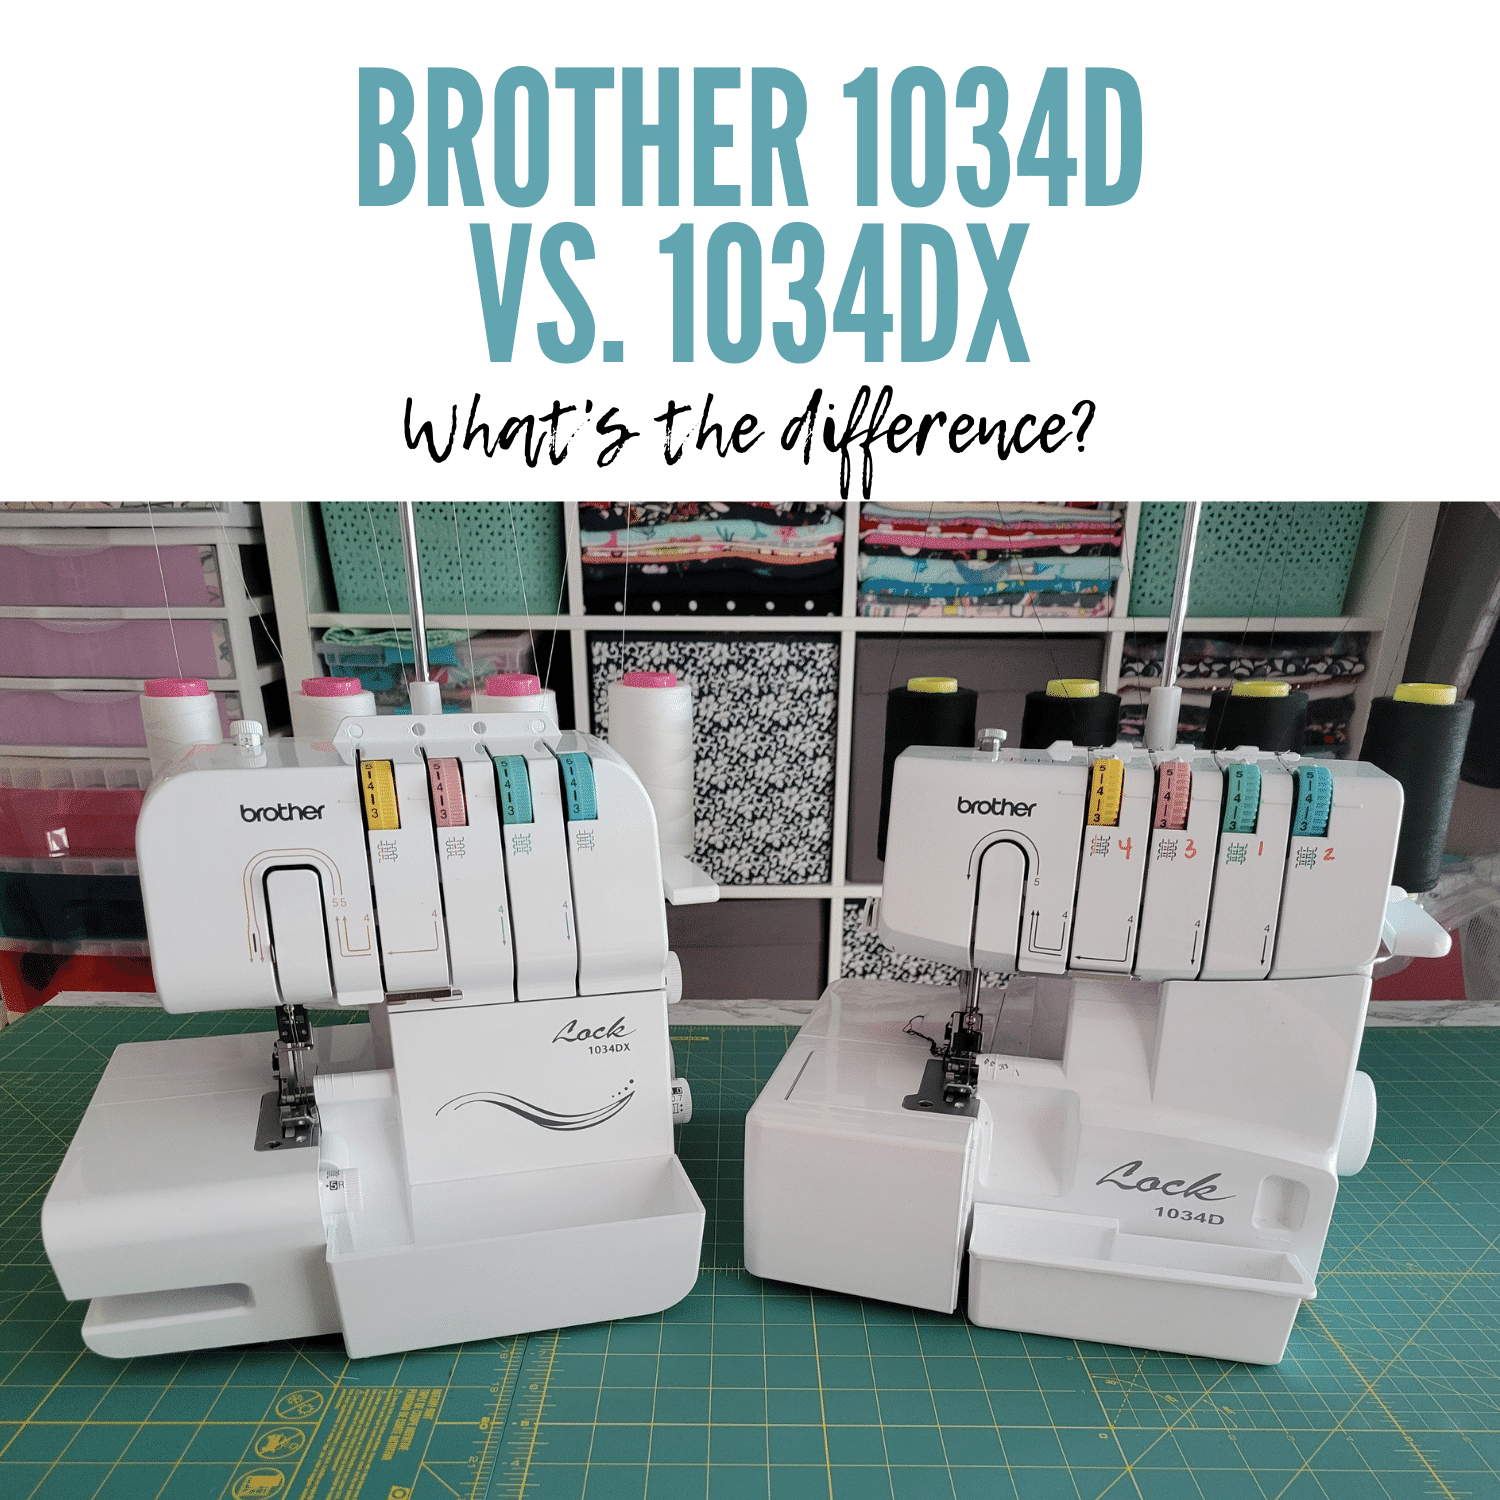 Brother 1034D vs. 1034DX (12 Differences)